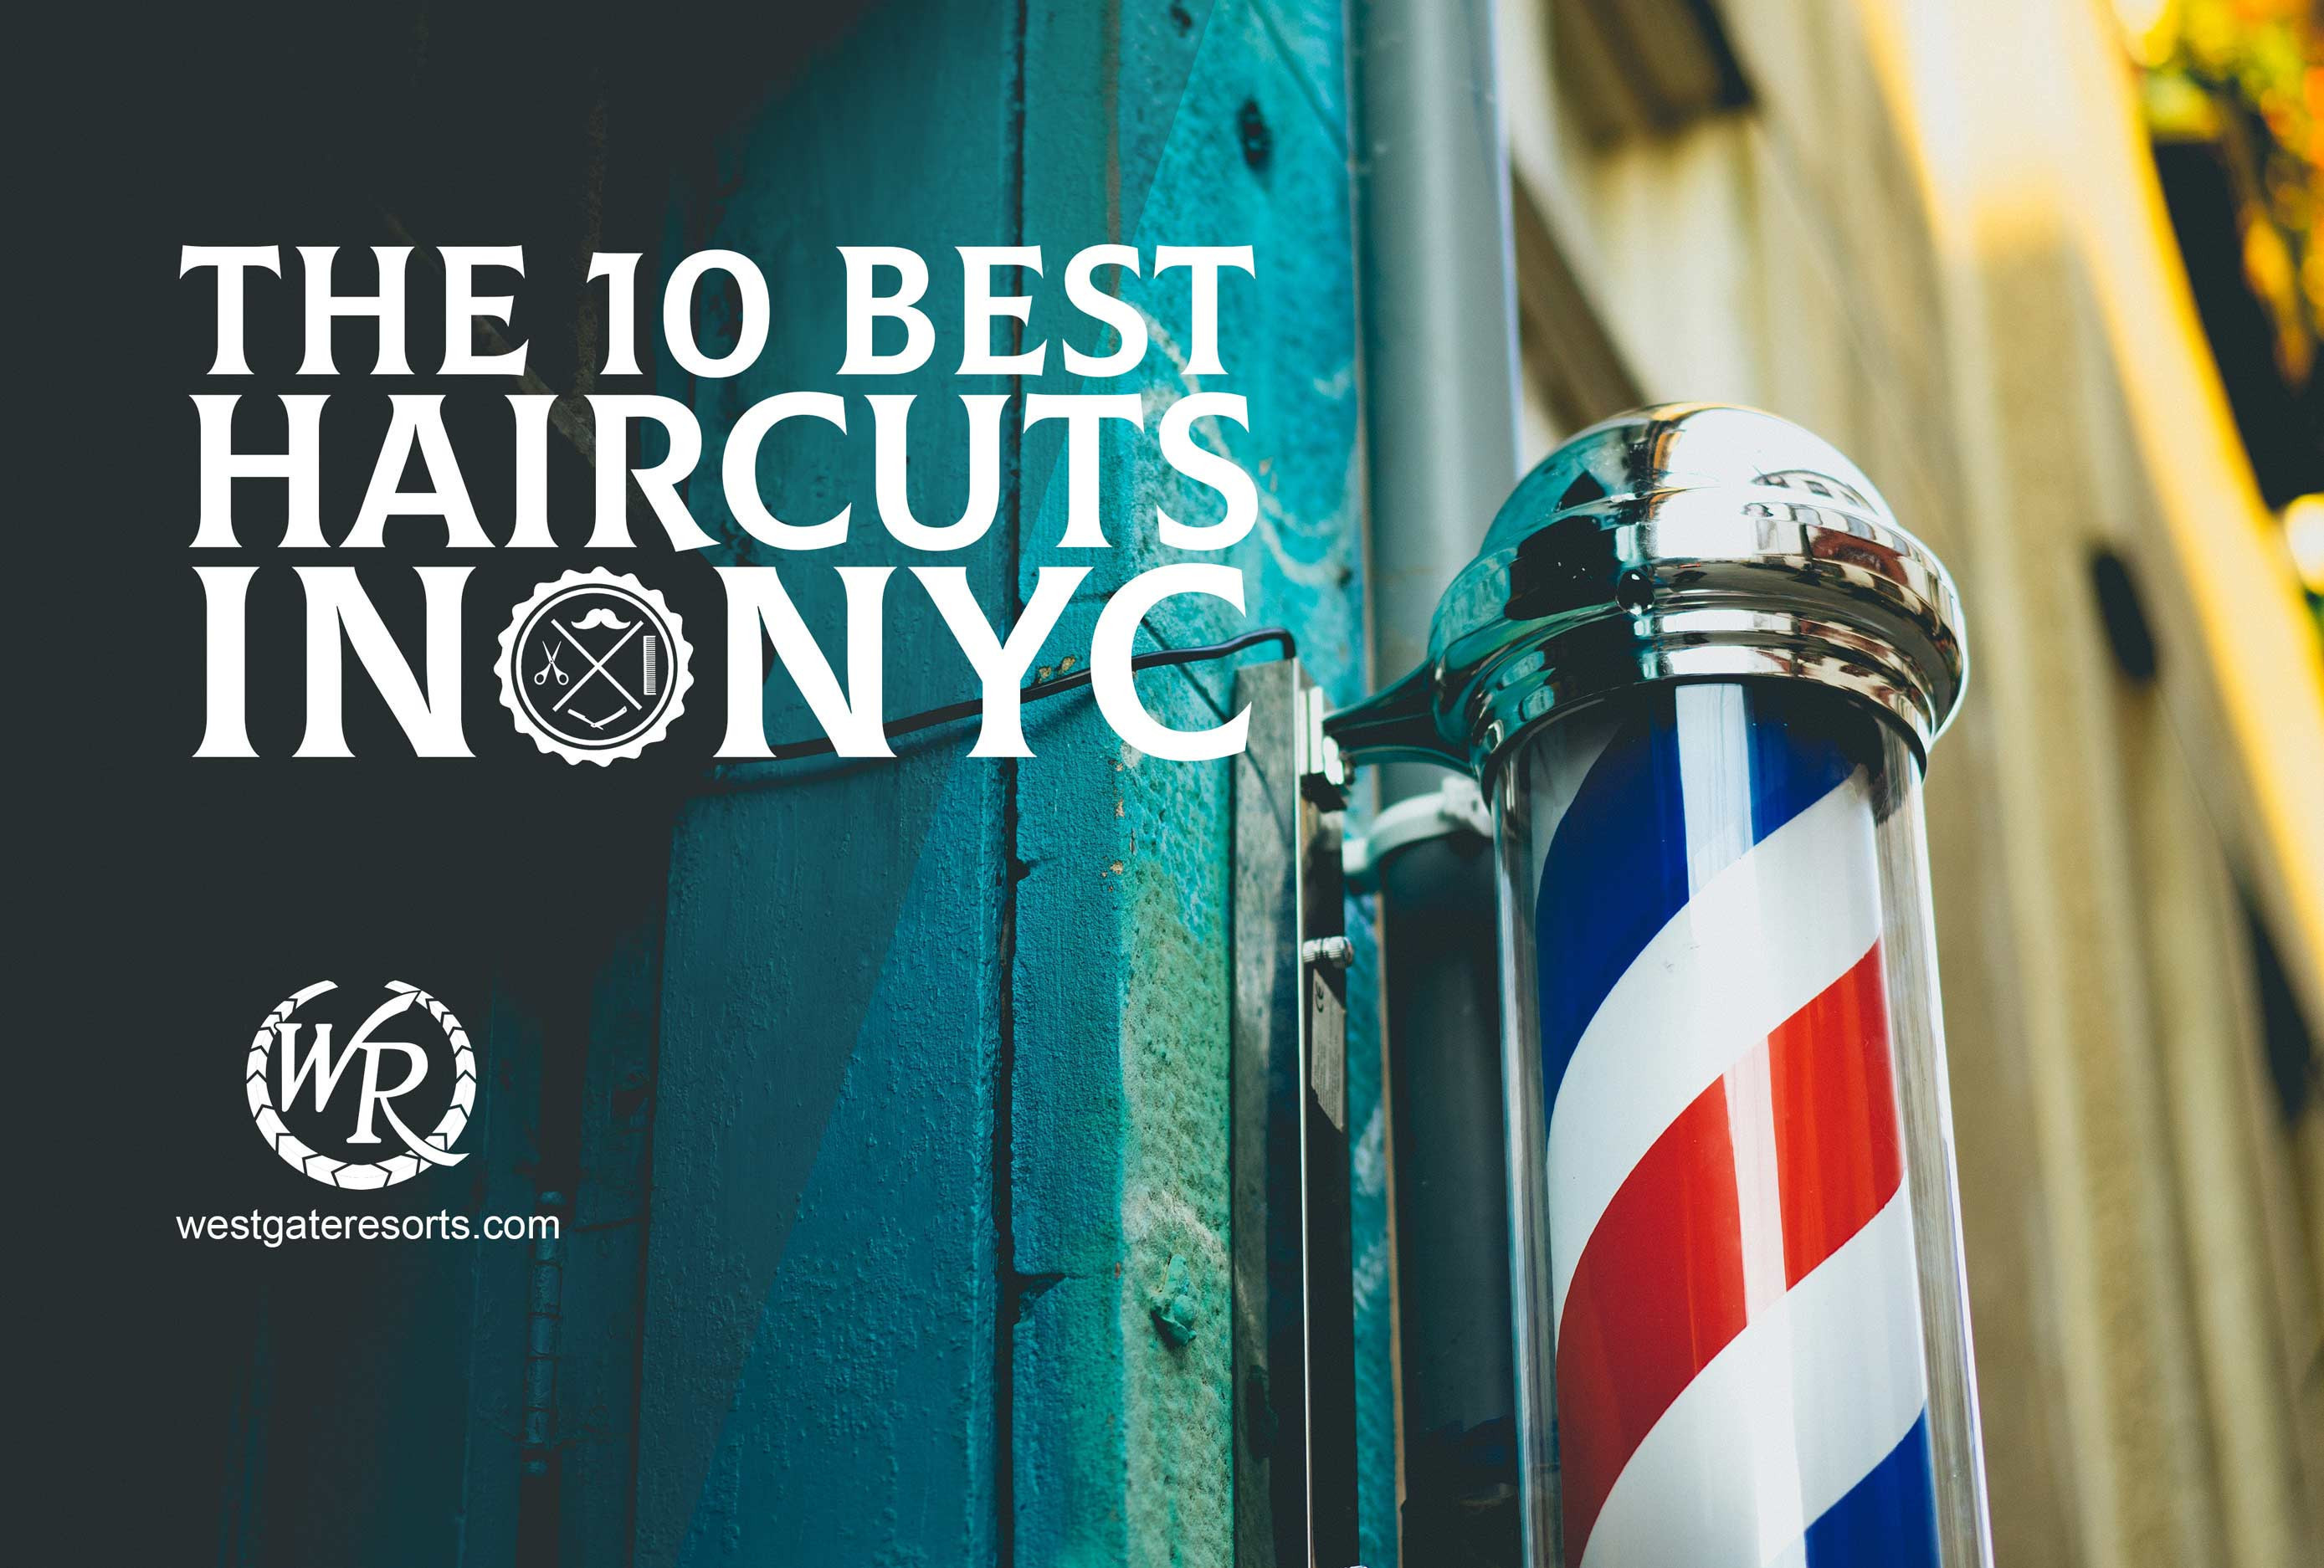 The 10 Best Places to Get a Haircut in NYC